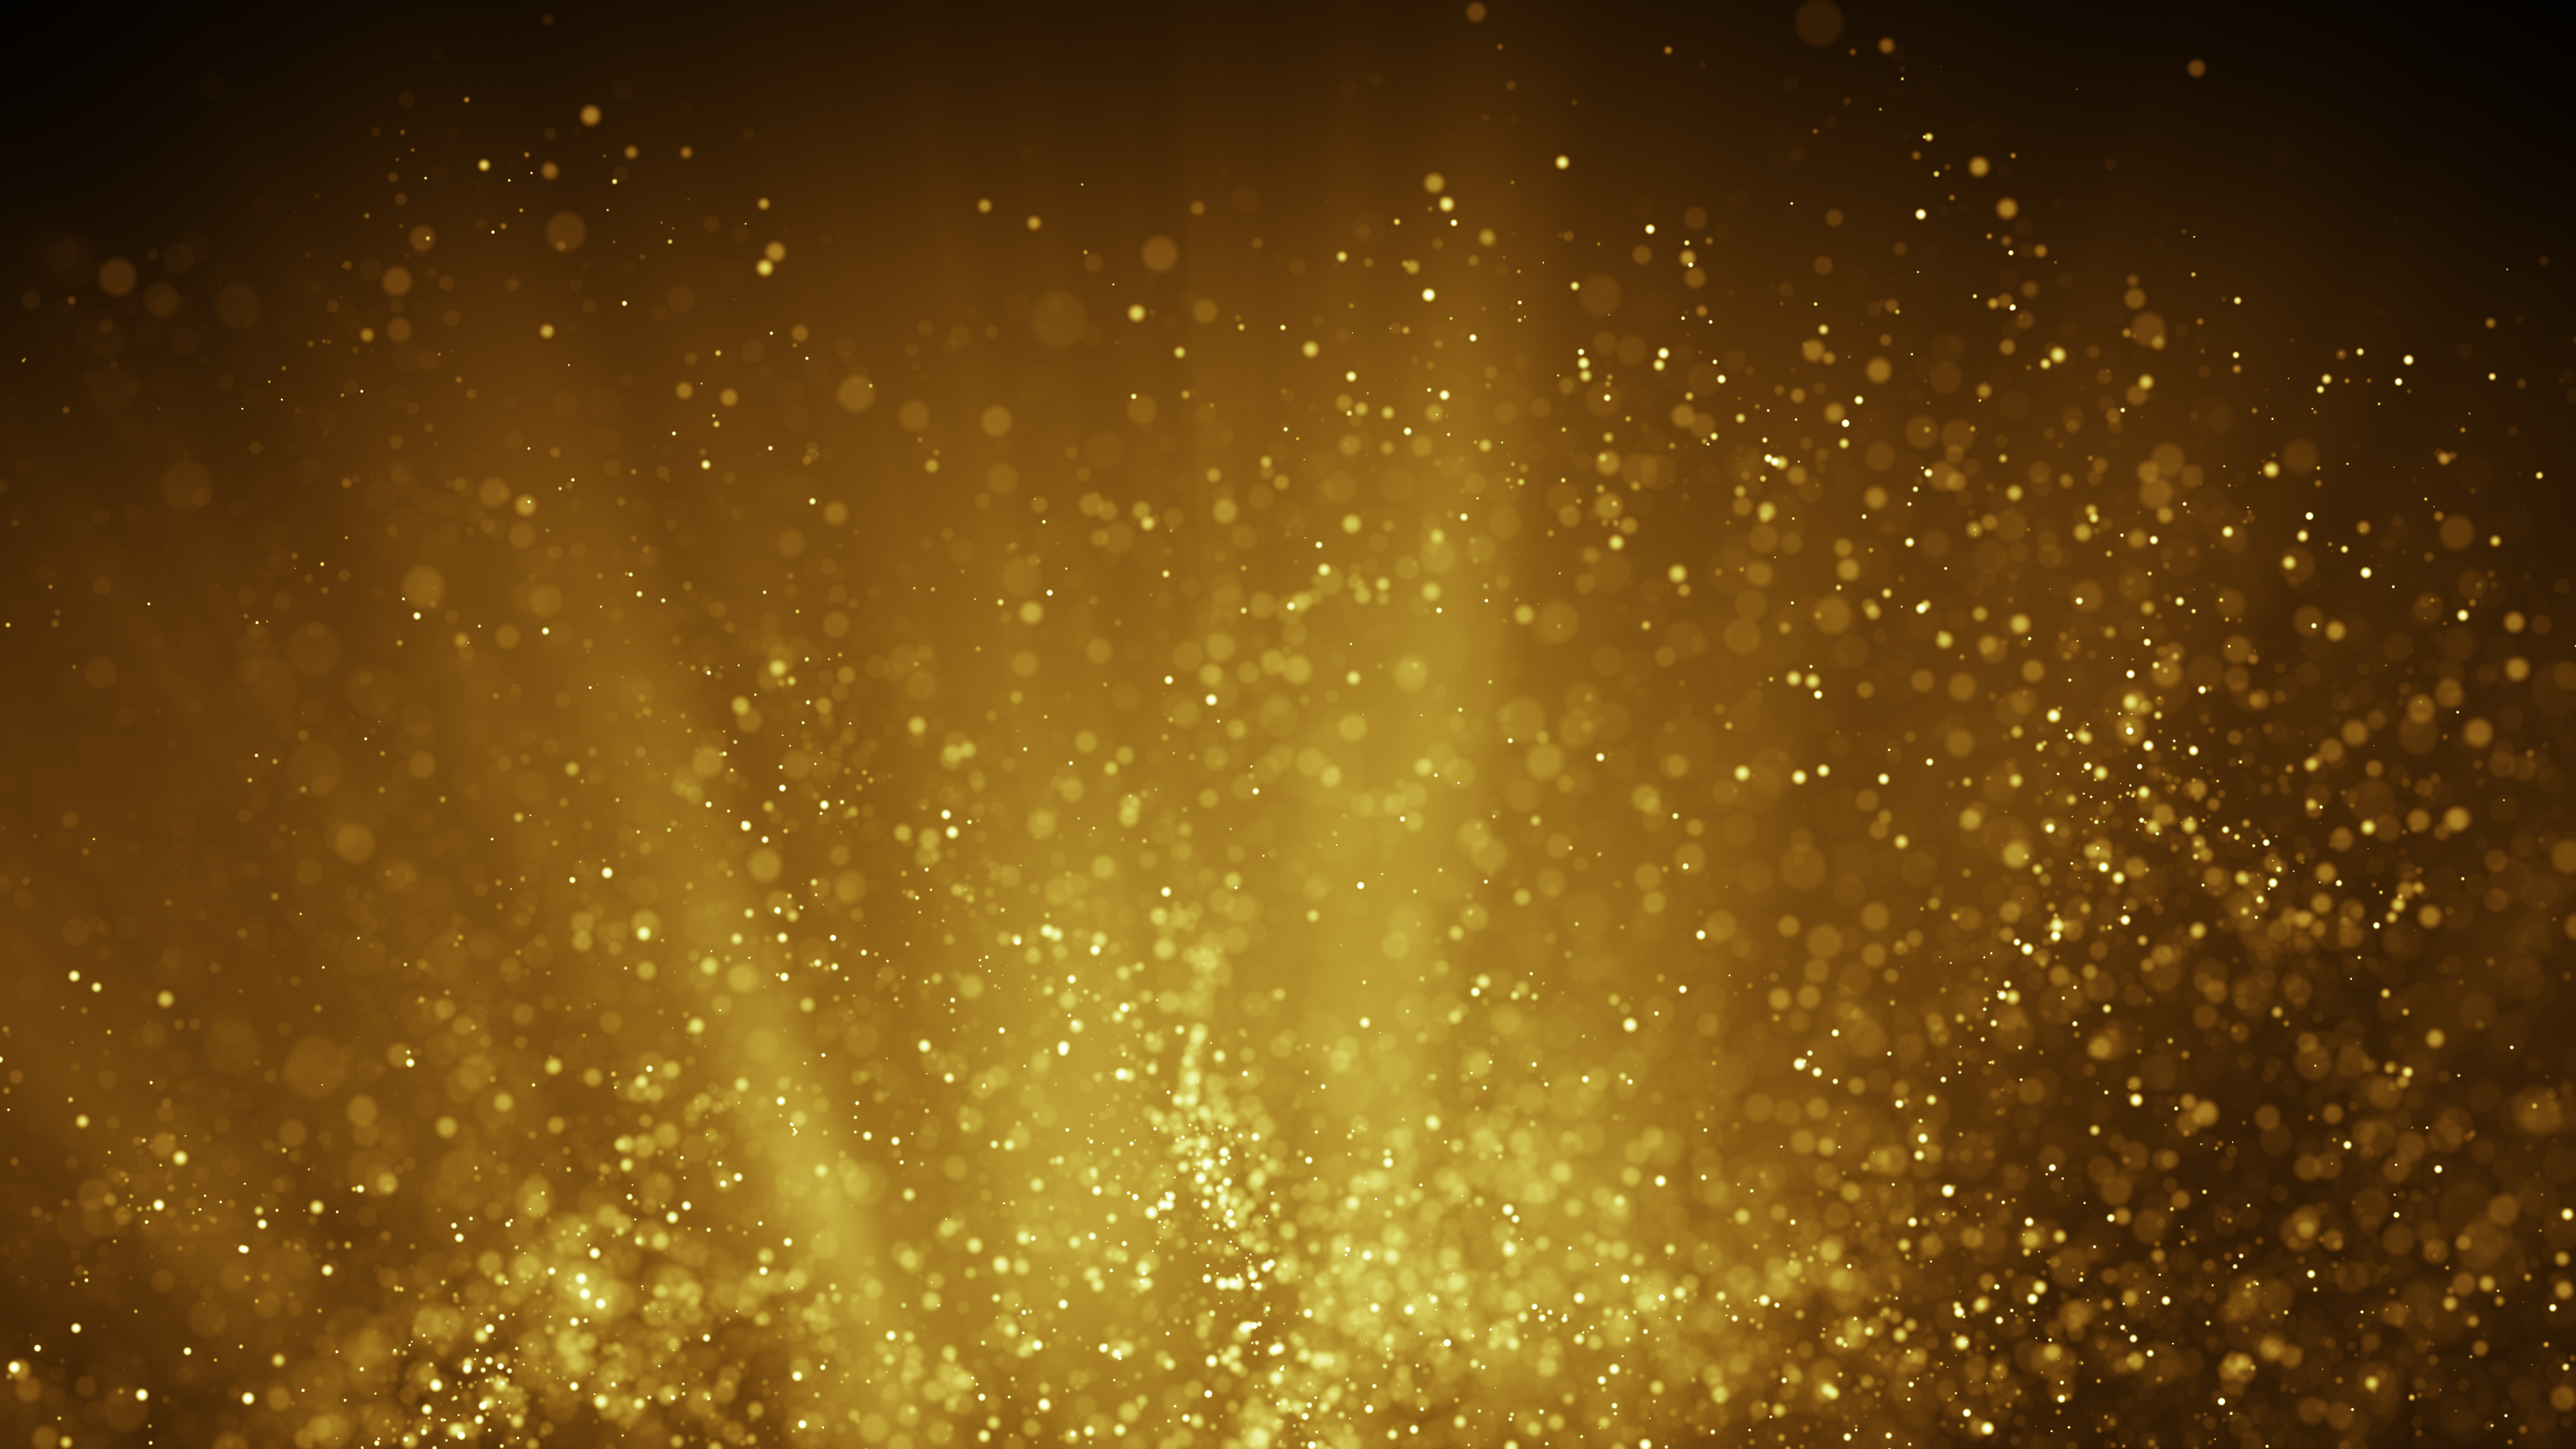 Fairy dust flying in gold light rays. Computer generated abstract raster illustration